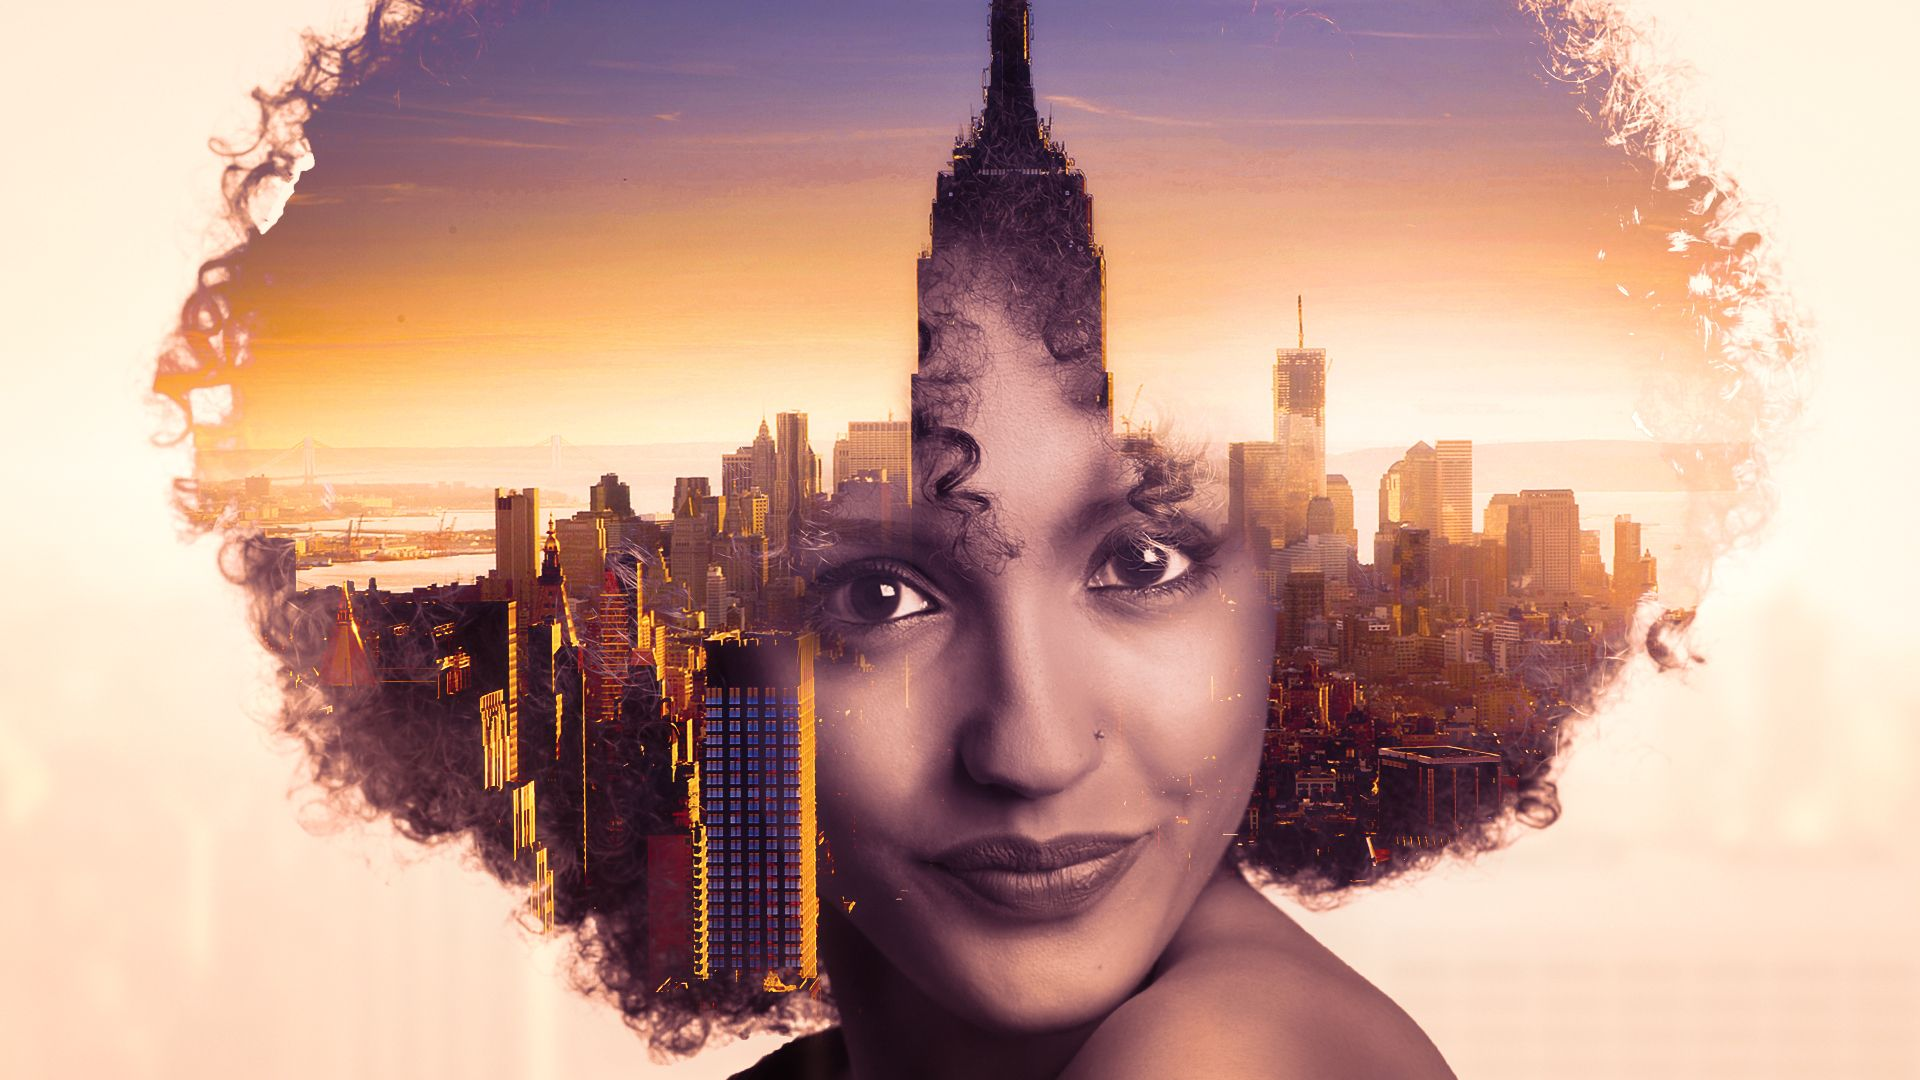 Easy double exposure effect photoshop tutorial tutorial link easy double exposure effect photoshop tutorial tutorial link httpsyoutu baditri Image collections